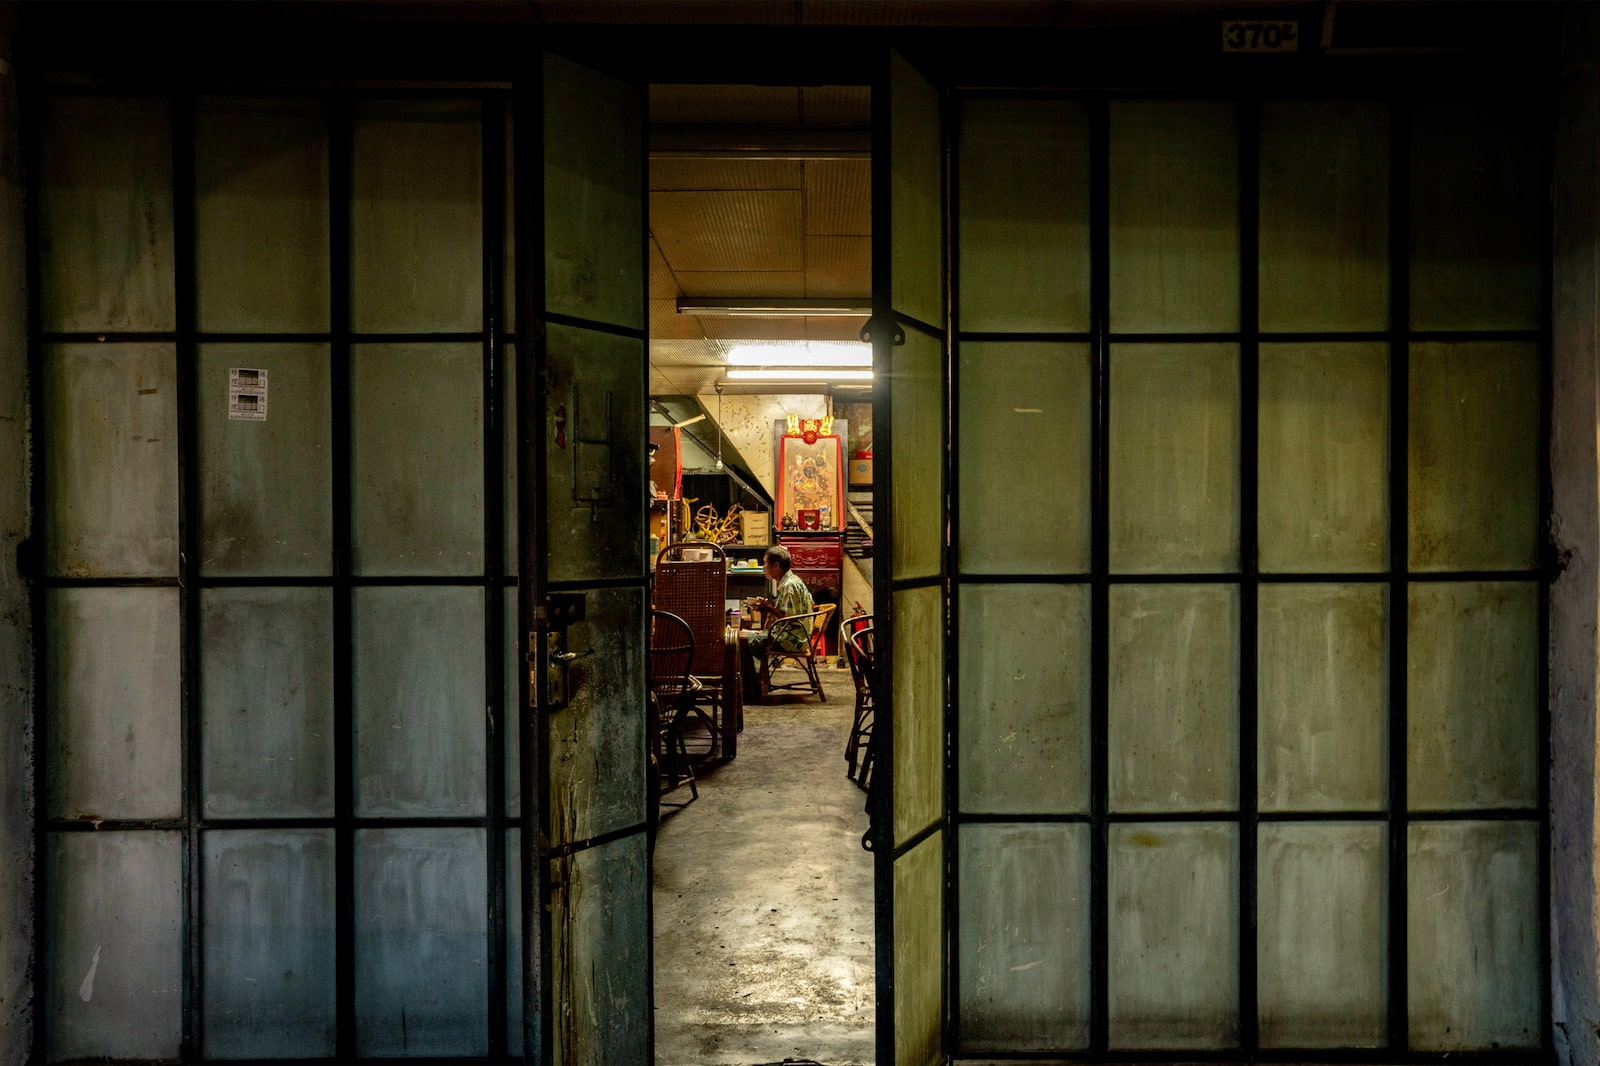 Doors partioning the interior of an old shophouse